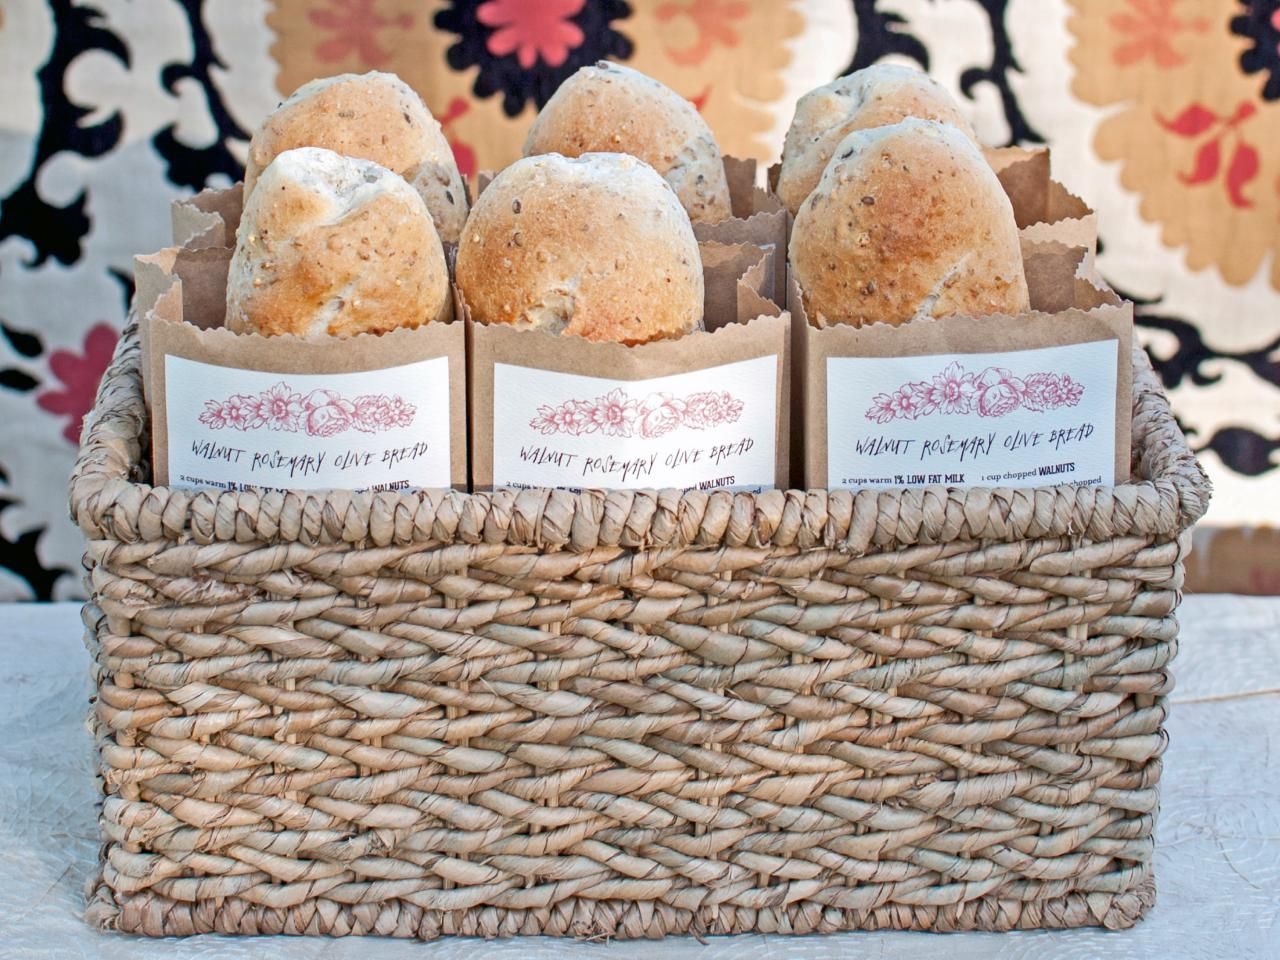 weddings party favor projects and ideas wedding favour pictures diy wedding and breads. Black Bedroom Furniture Sets. Home Design Ideas